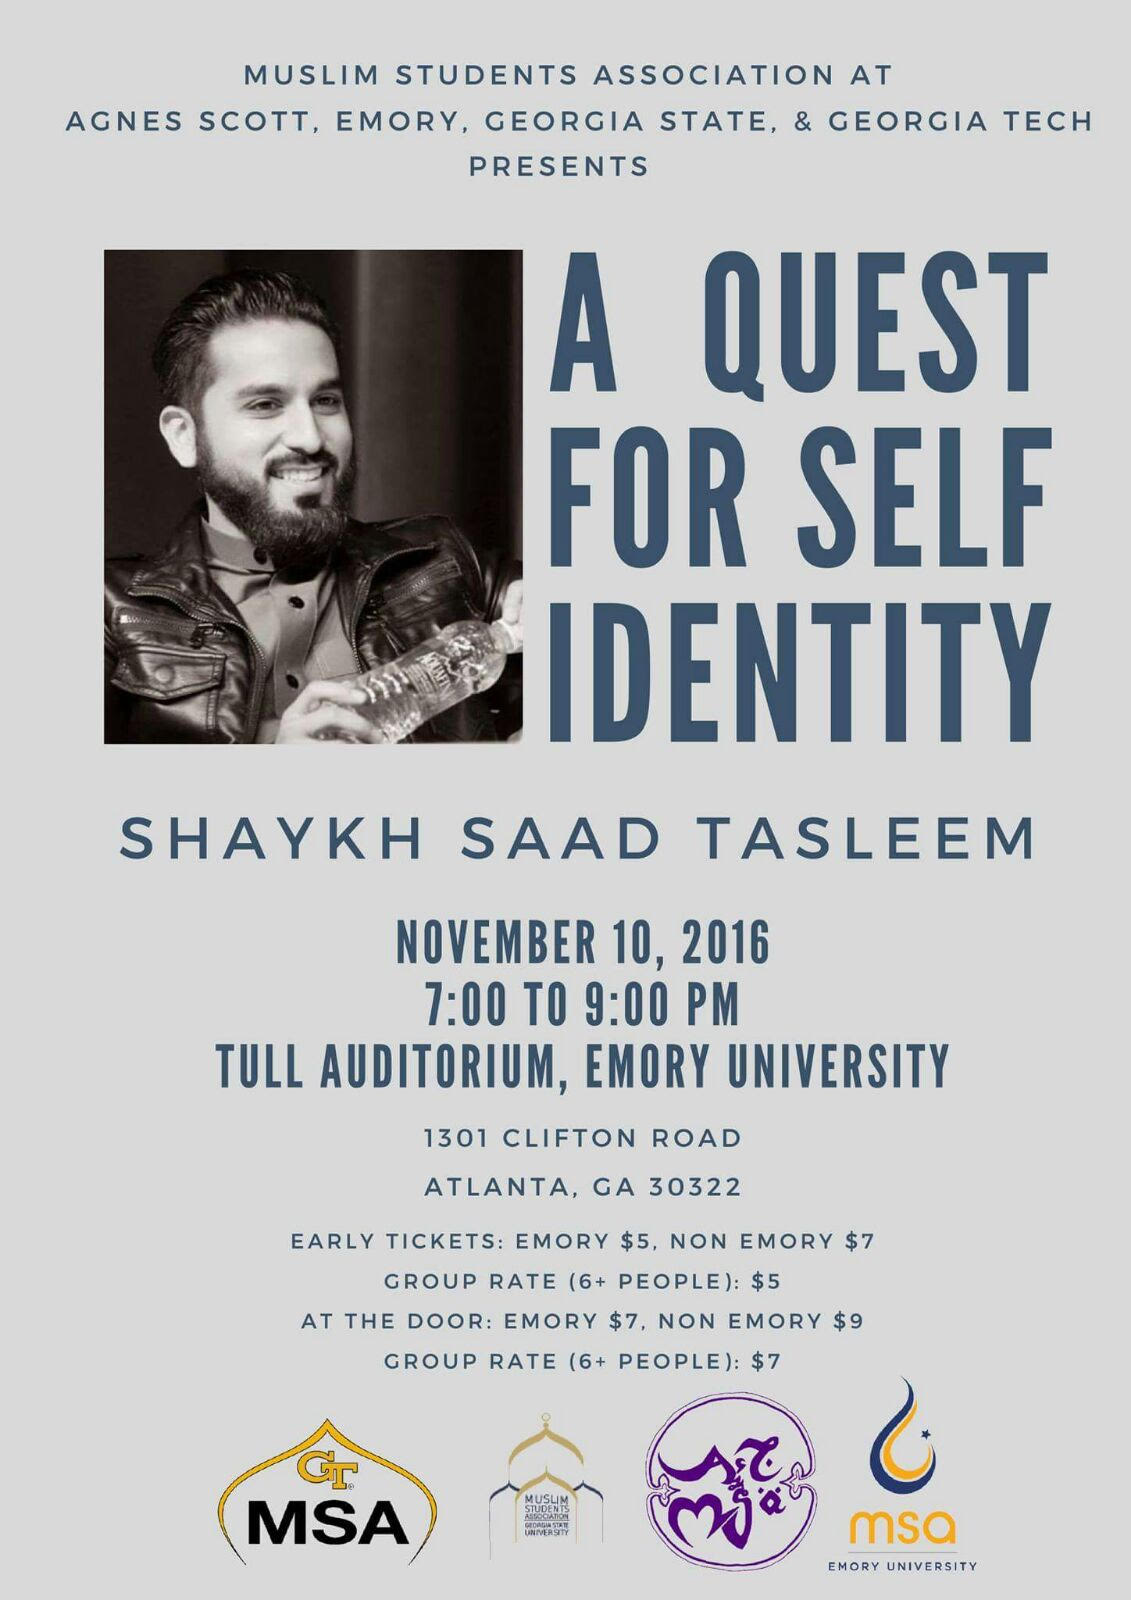 """Muslim Student Association At Anges Scott, Emory, Georgia State, and Georgia Tech Present """"A Quest For Self Identity"""" by Shaykh Saad Tasleem. Please join us on November 10th, 7pm-9pm at Tull Auditorium,Emory University ( 1301 Clifton Road, Atlanta Ga 30322). See you there !"""